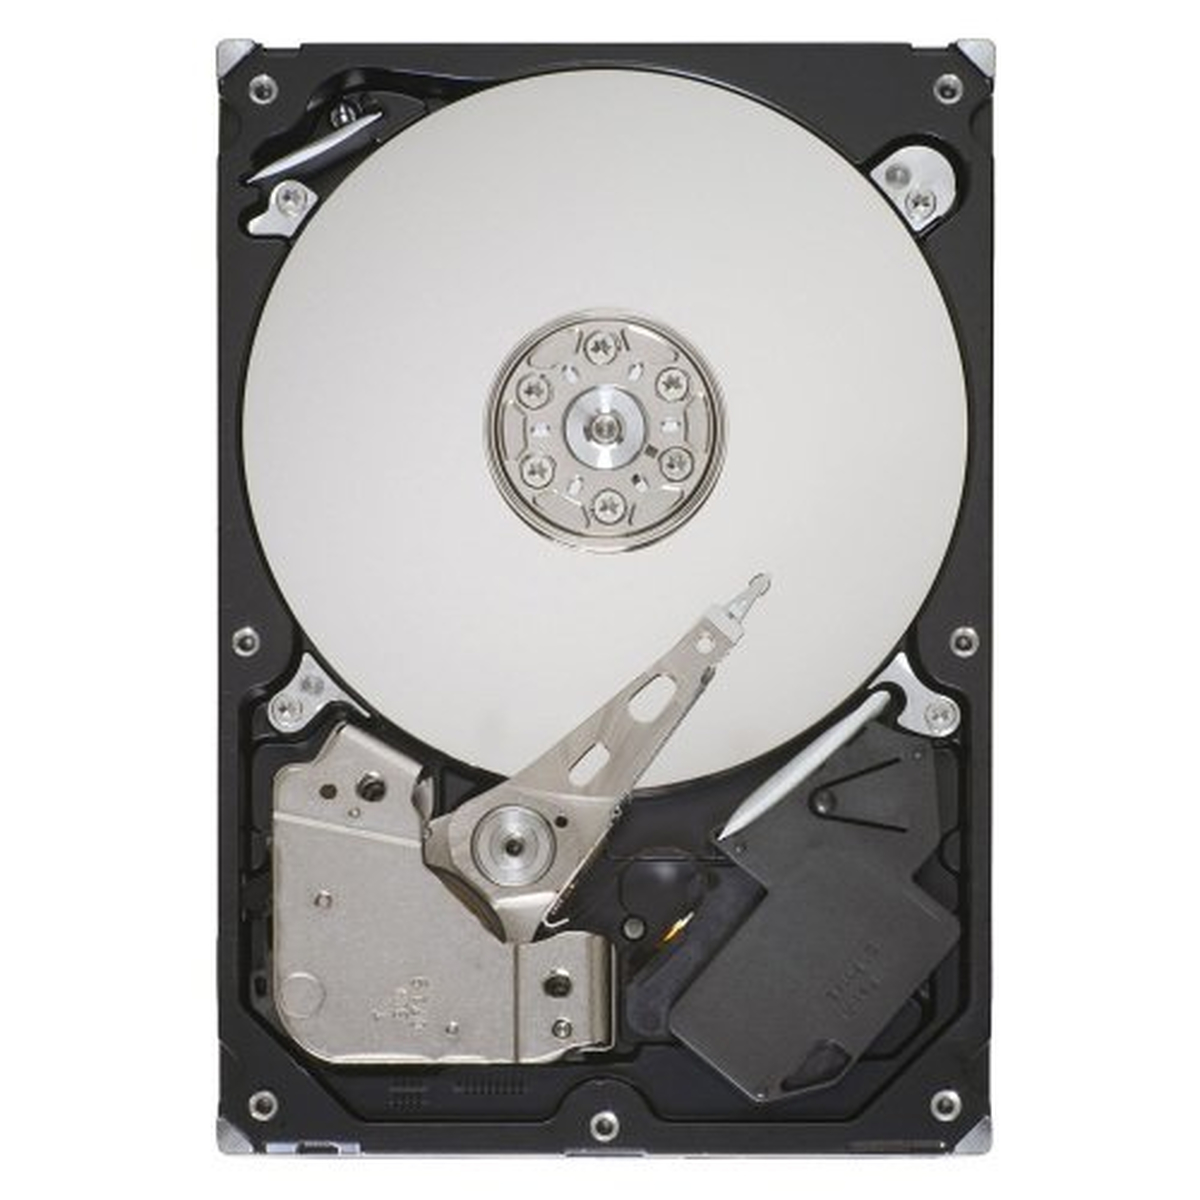 Seagate Pipeline HD 250GB 3.5 SATA II ST3250312CS interne...